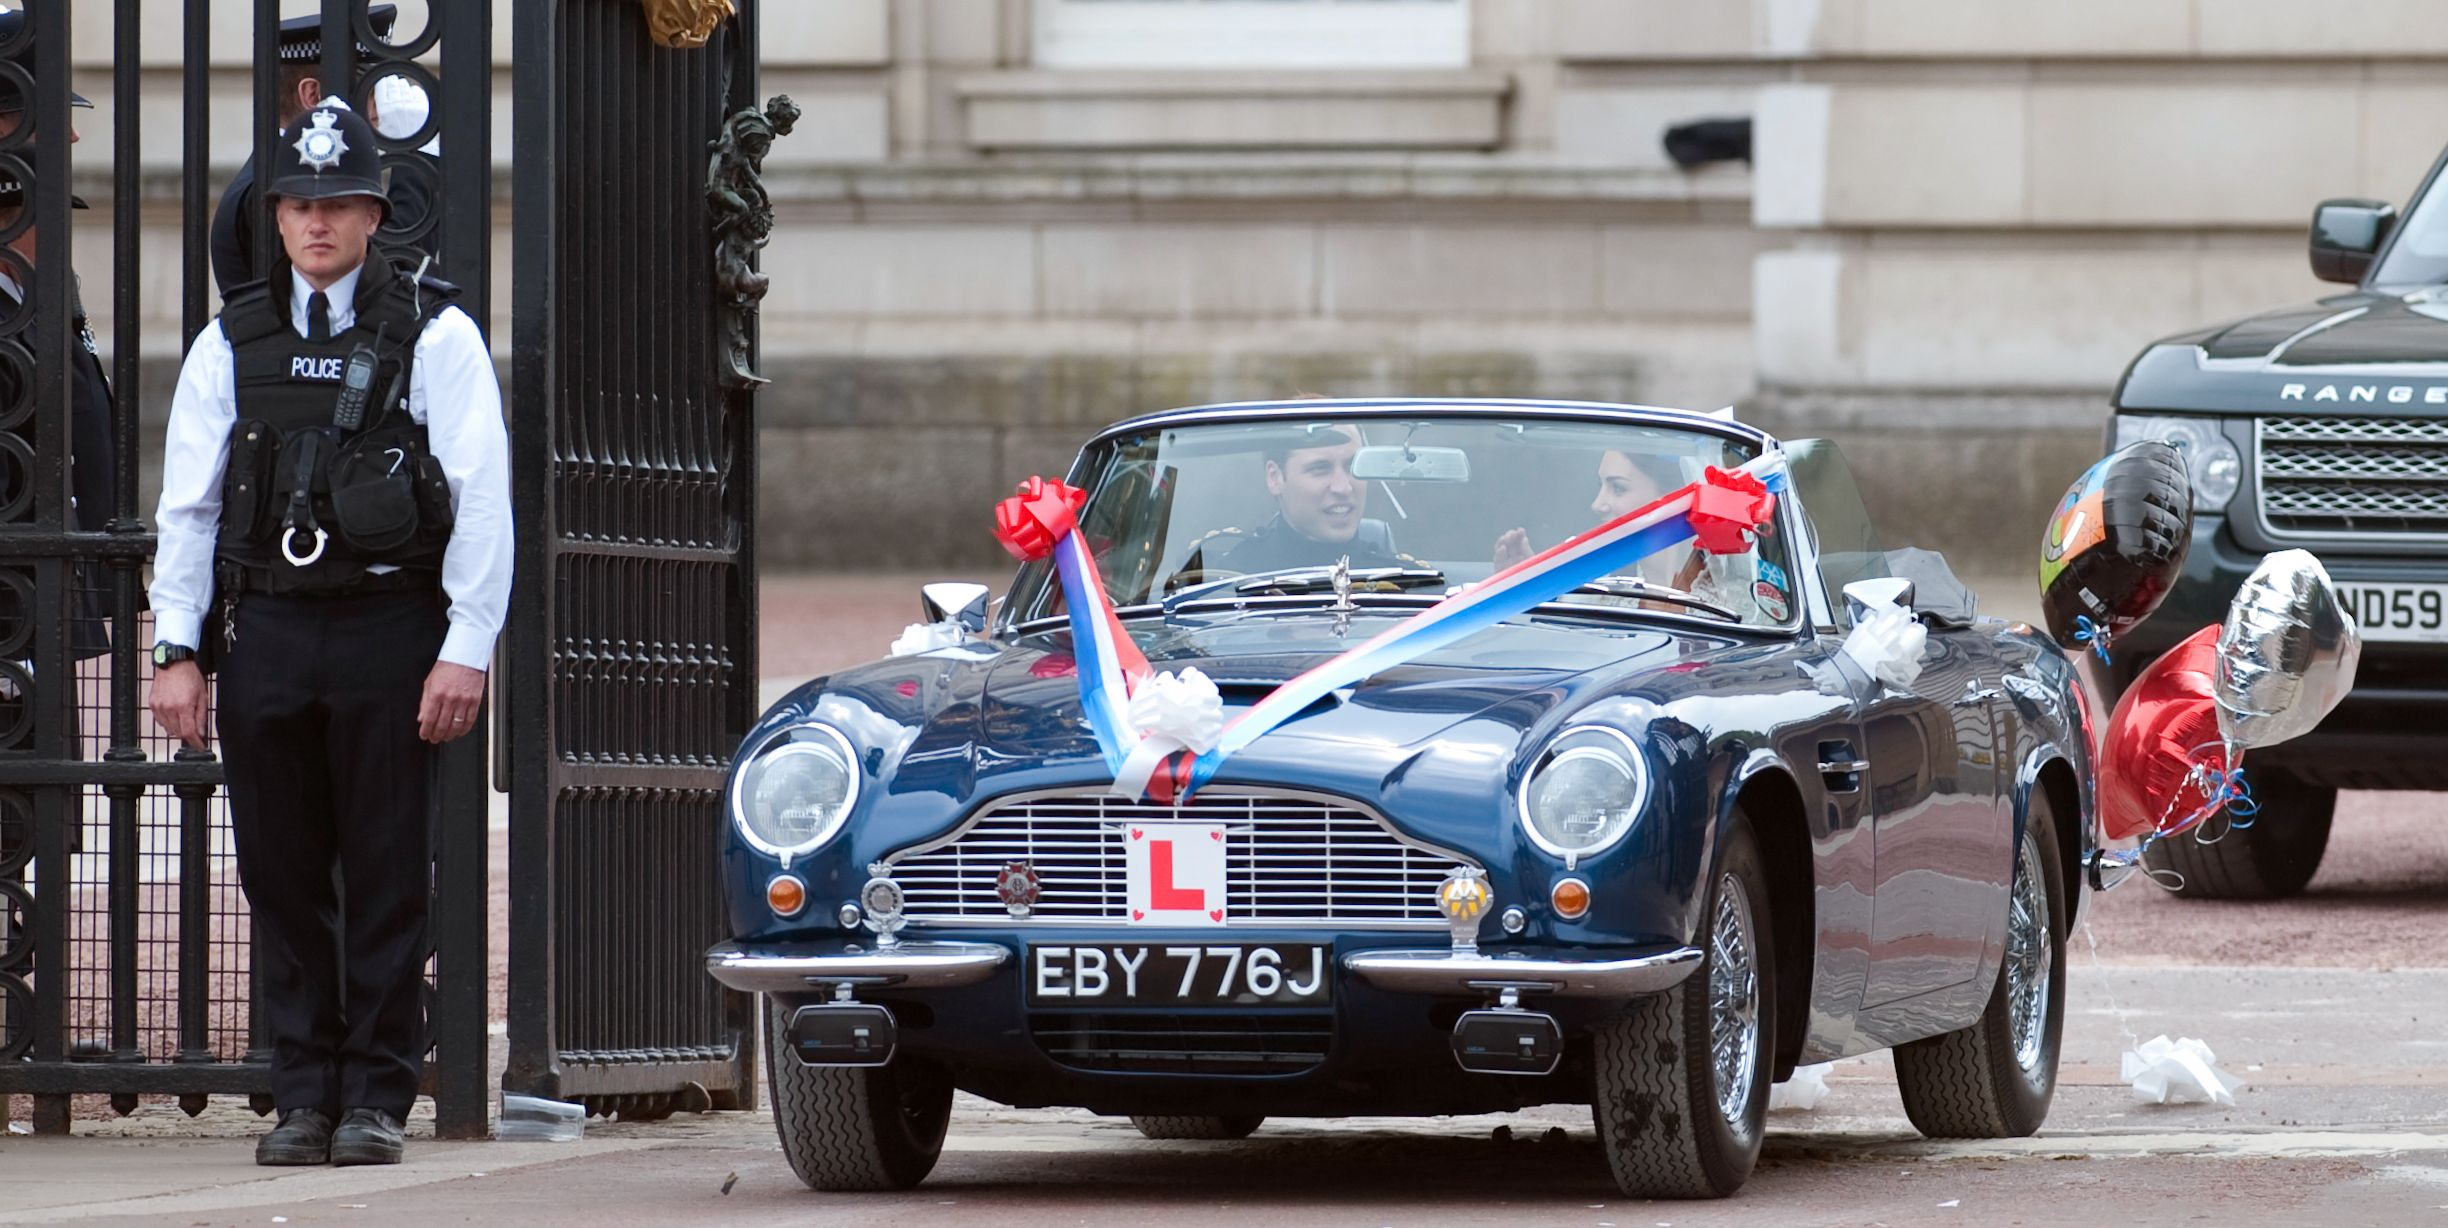 Princess Eugenie S Wedding Car Was The Aston Martin Db10 From The